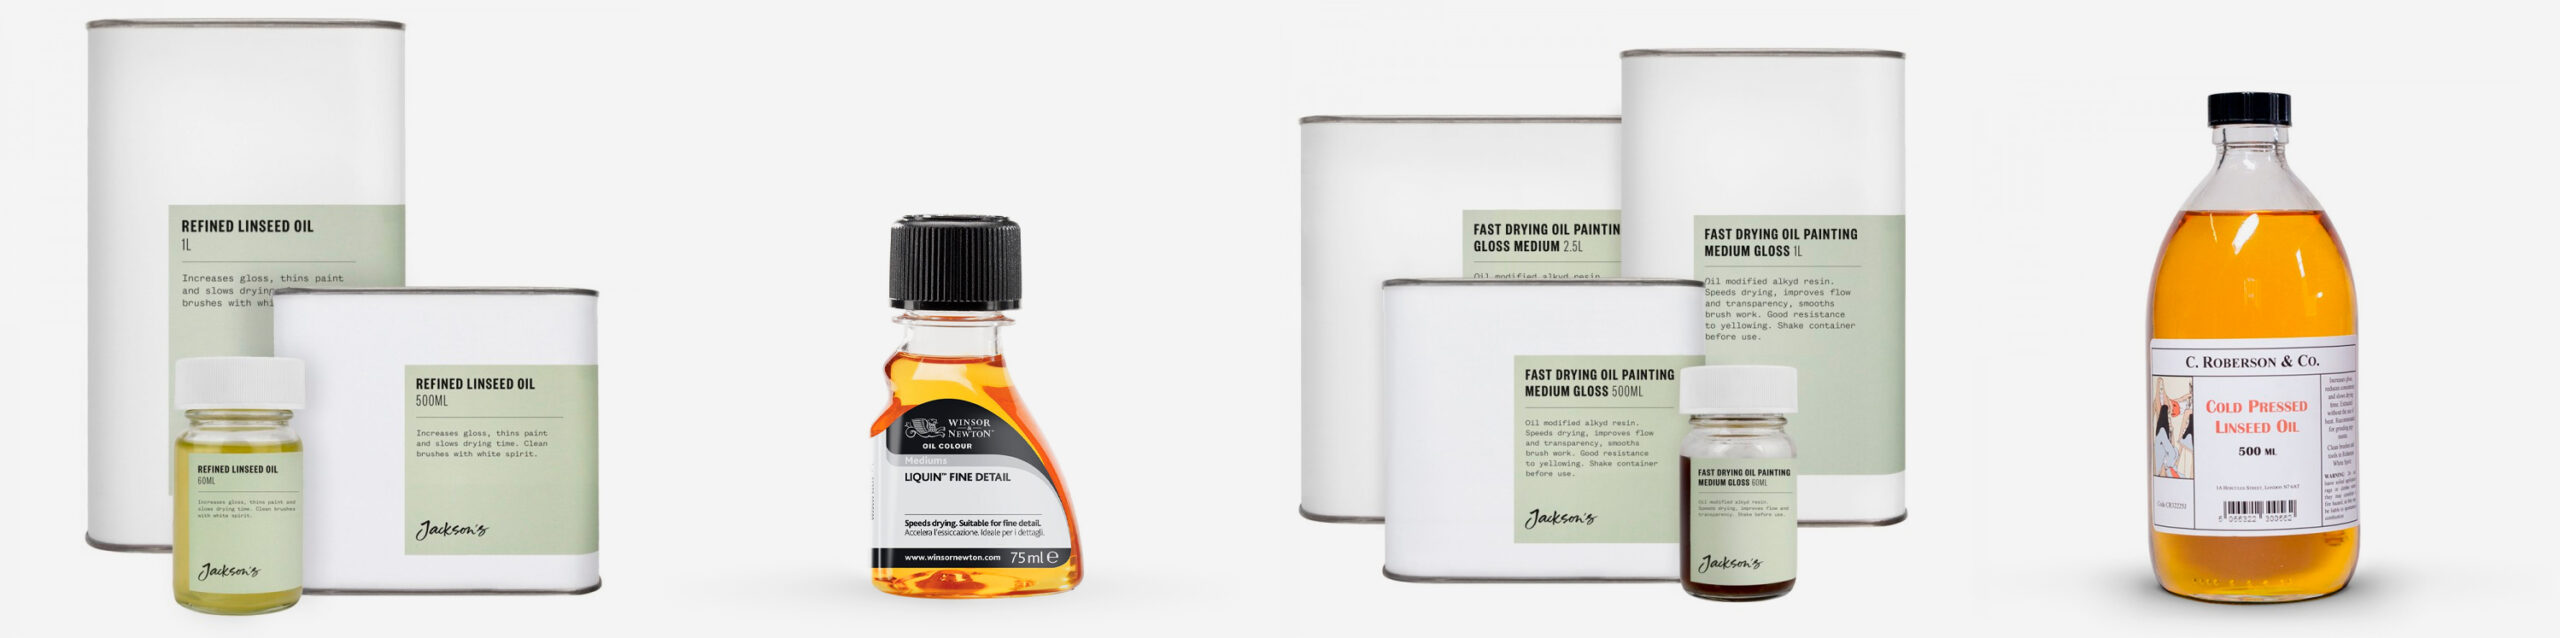 Top Image: Jackson's Refined Linseed Oil and Fast Drying Oil Painting Medium L-R: Jackson's Refined Linseed Oil, Winsor and Newton Liquin Fine Detail, Jackson's Fast Drying Oil Painting Medium, C. Roberson & Co. Cold Pressed Linseed Oil